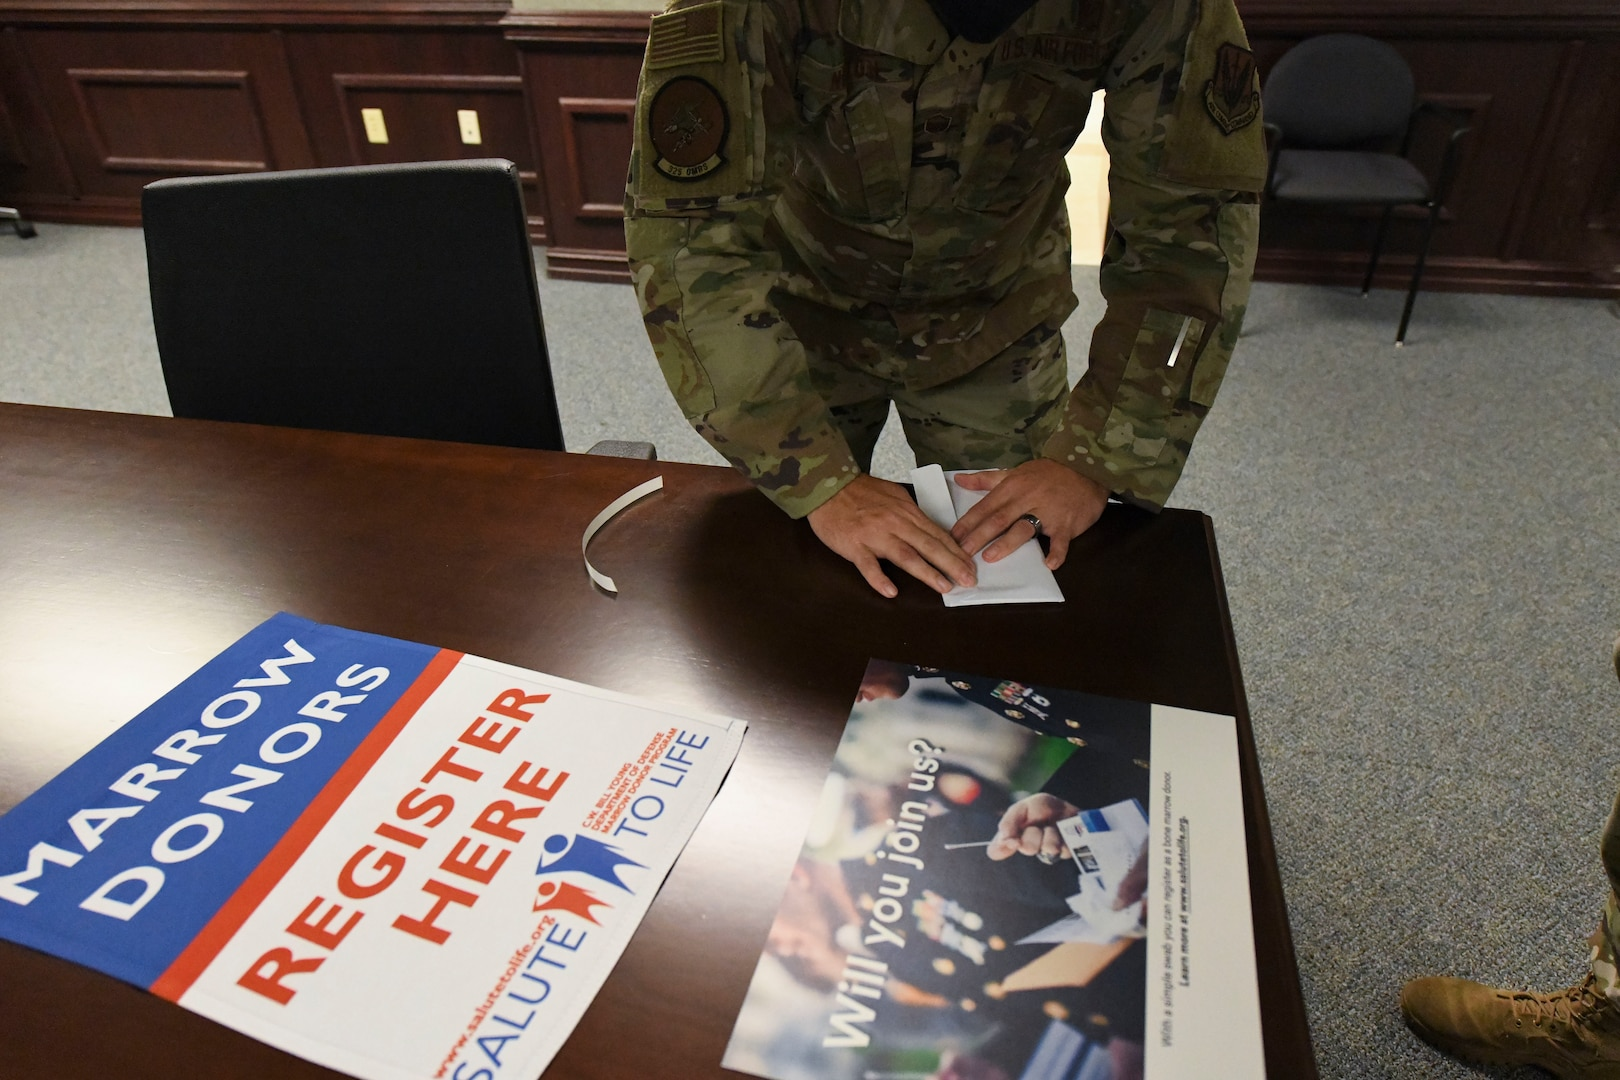 A uniformed member seals an envelope on a table.